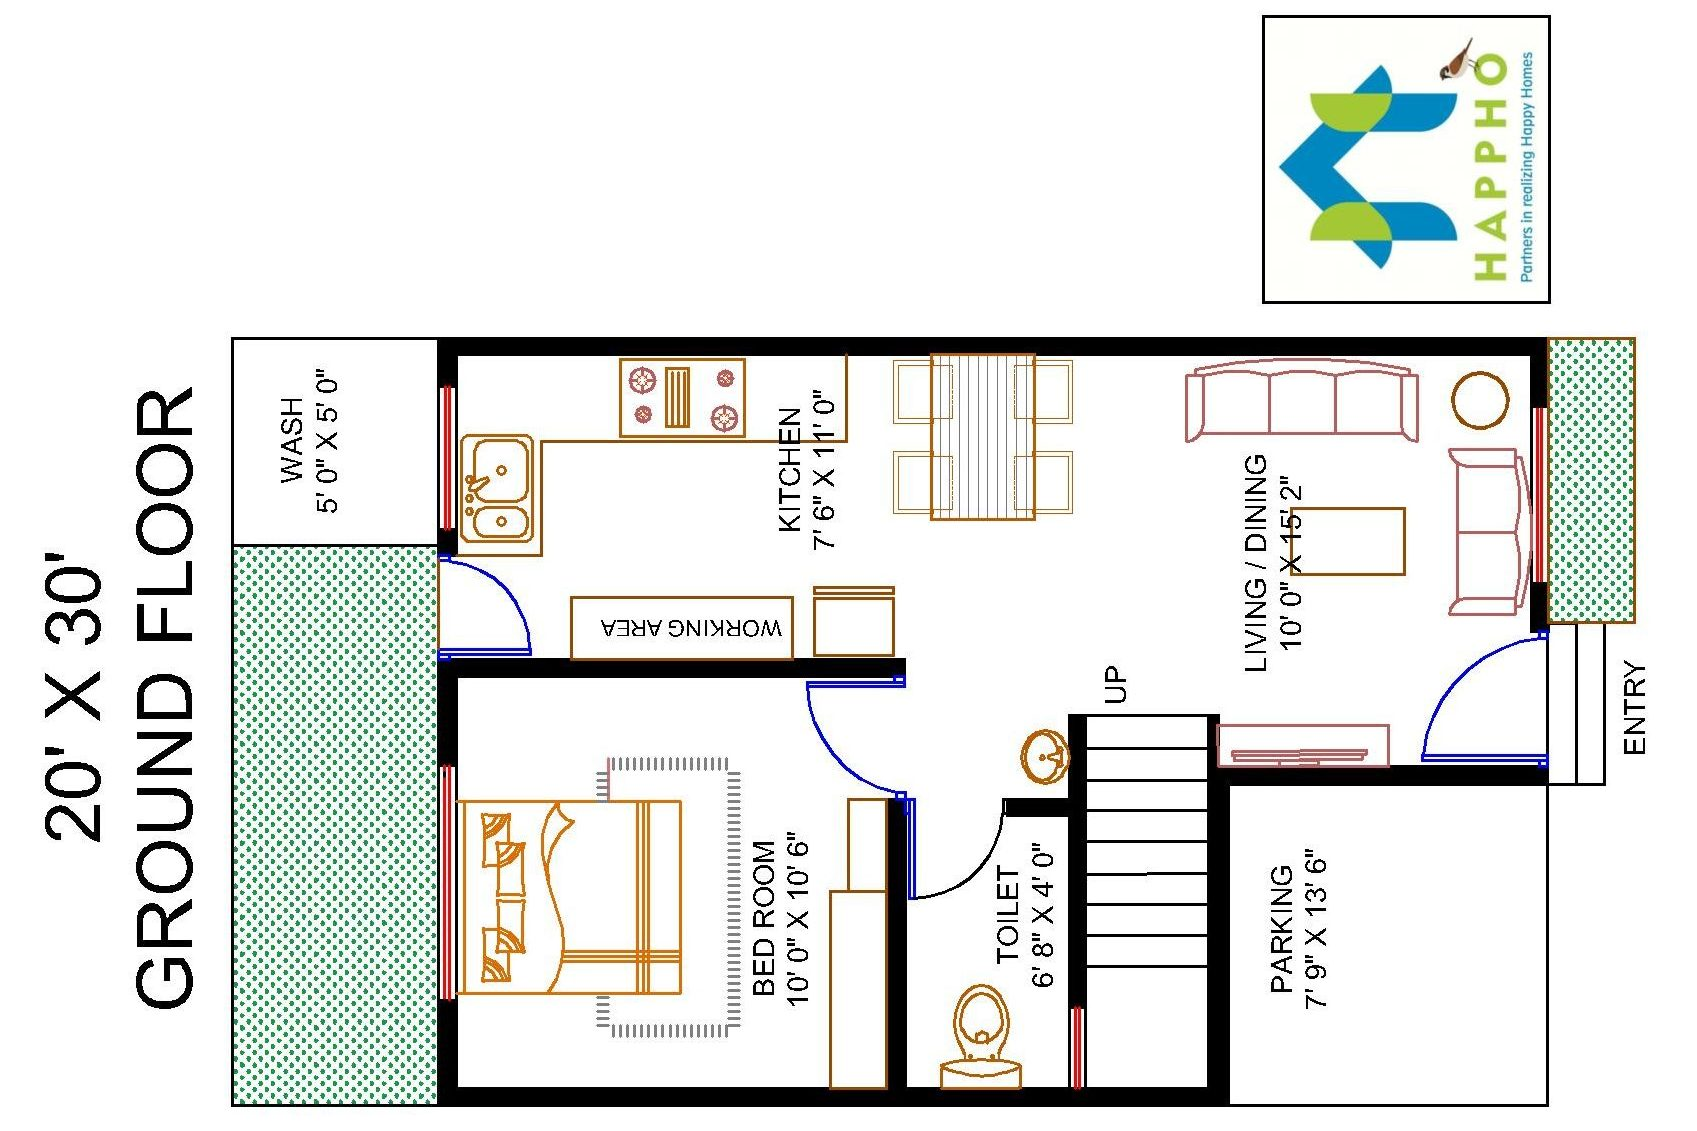 Floor plan for 20 x 30 plot 1 bhk 600 square feet 67 for 600 square foot house plans